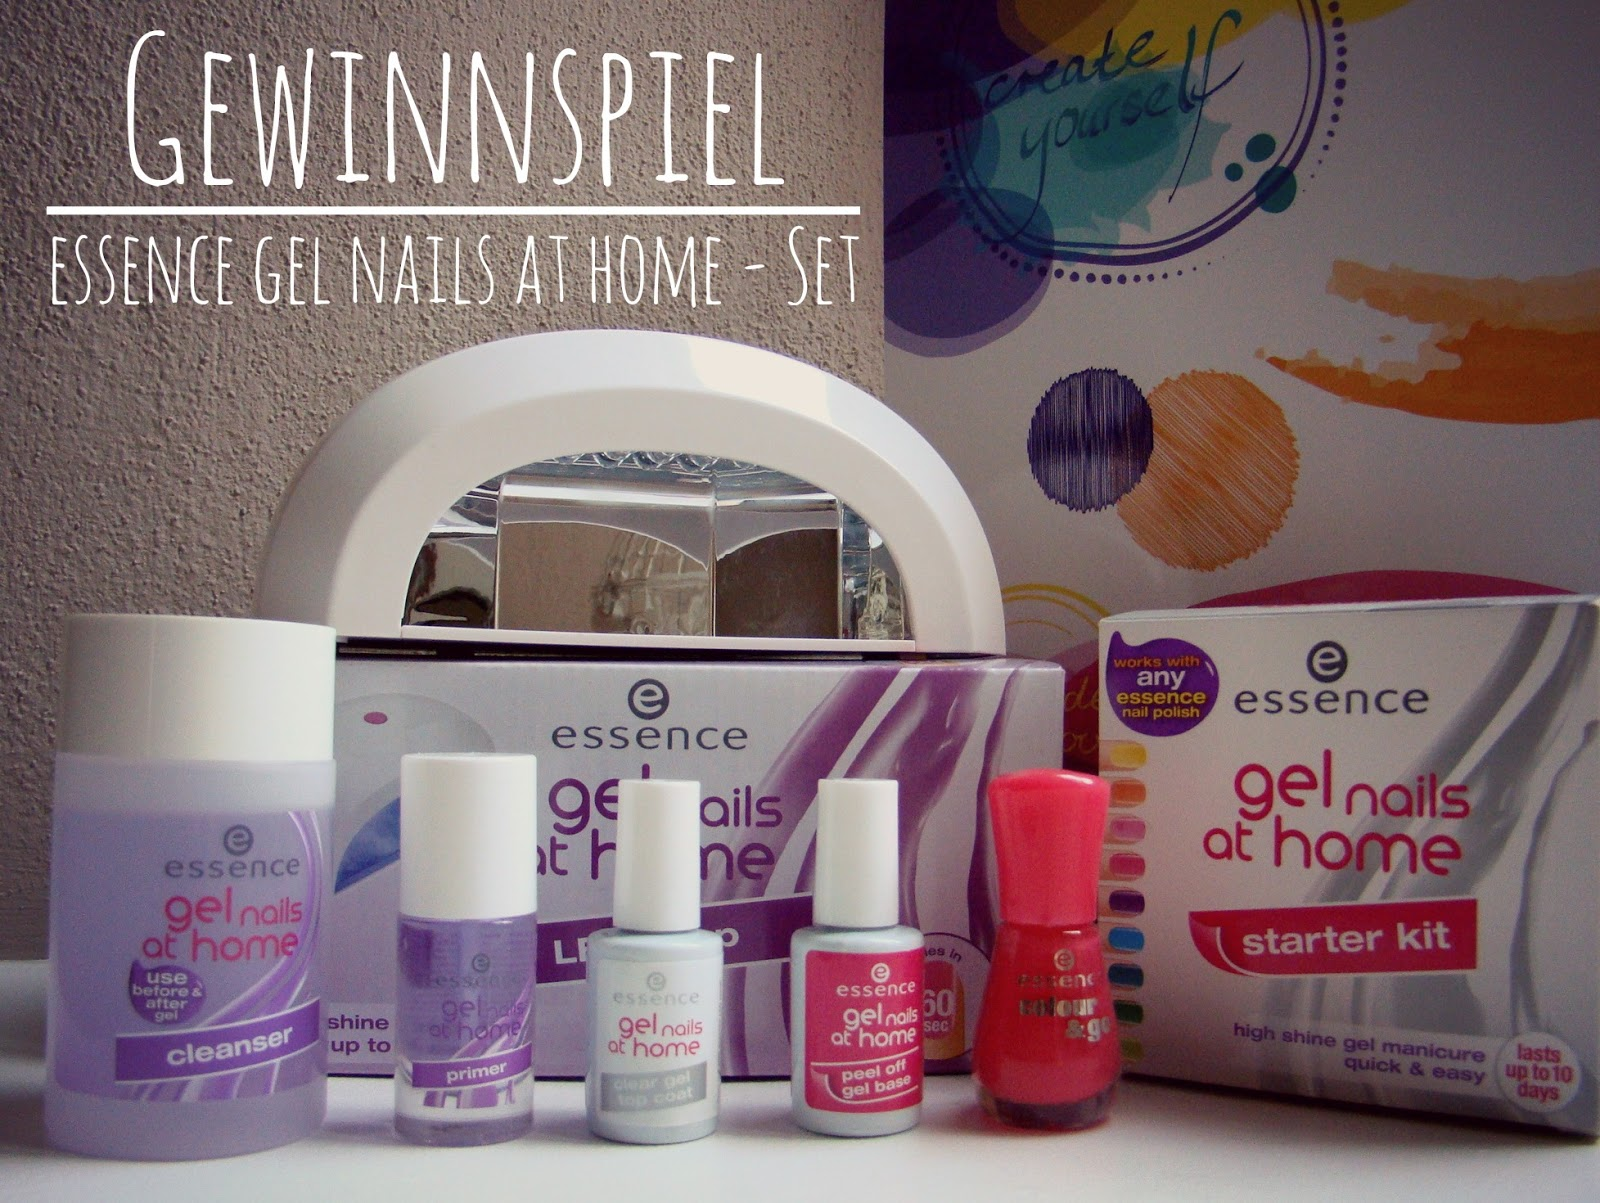 essence gel nails at home 1 erfahrungen gewinnspiel. Black Bedroom Furniture Sets. Home Design Ideas